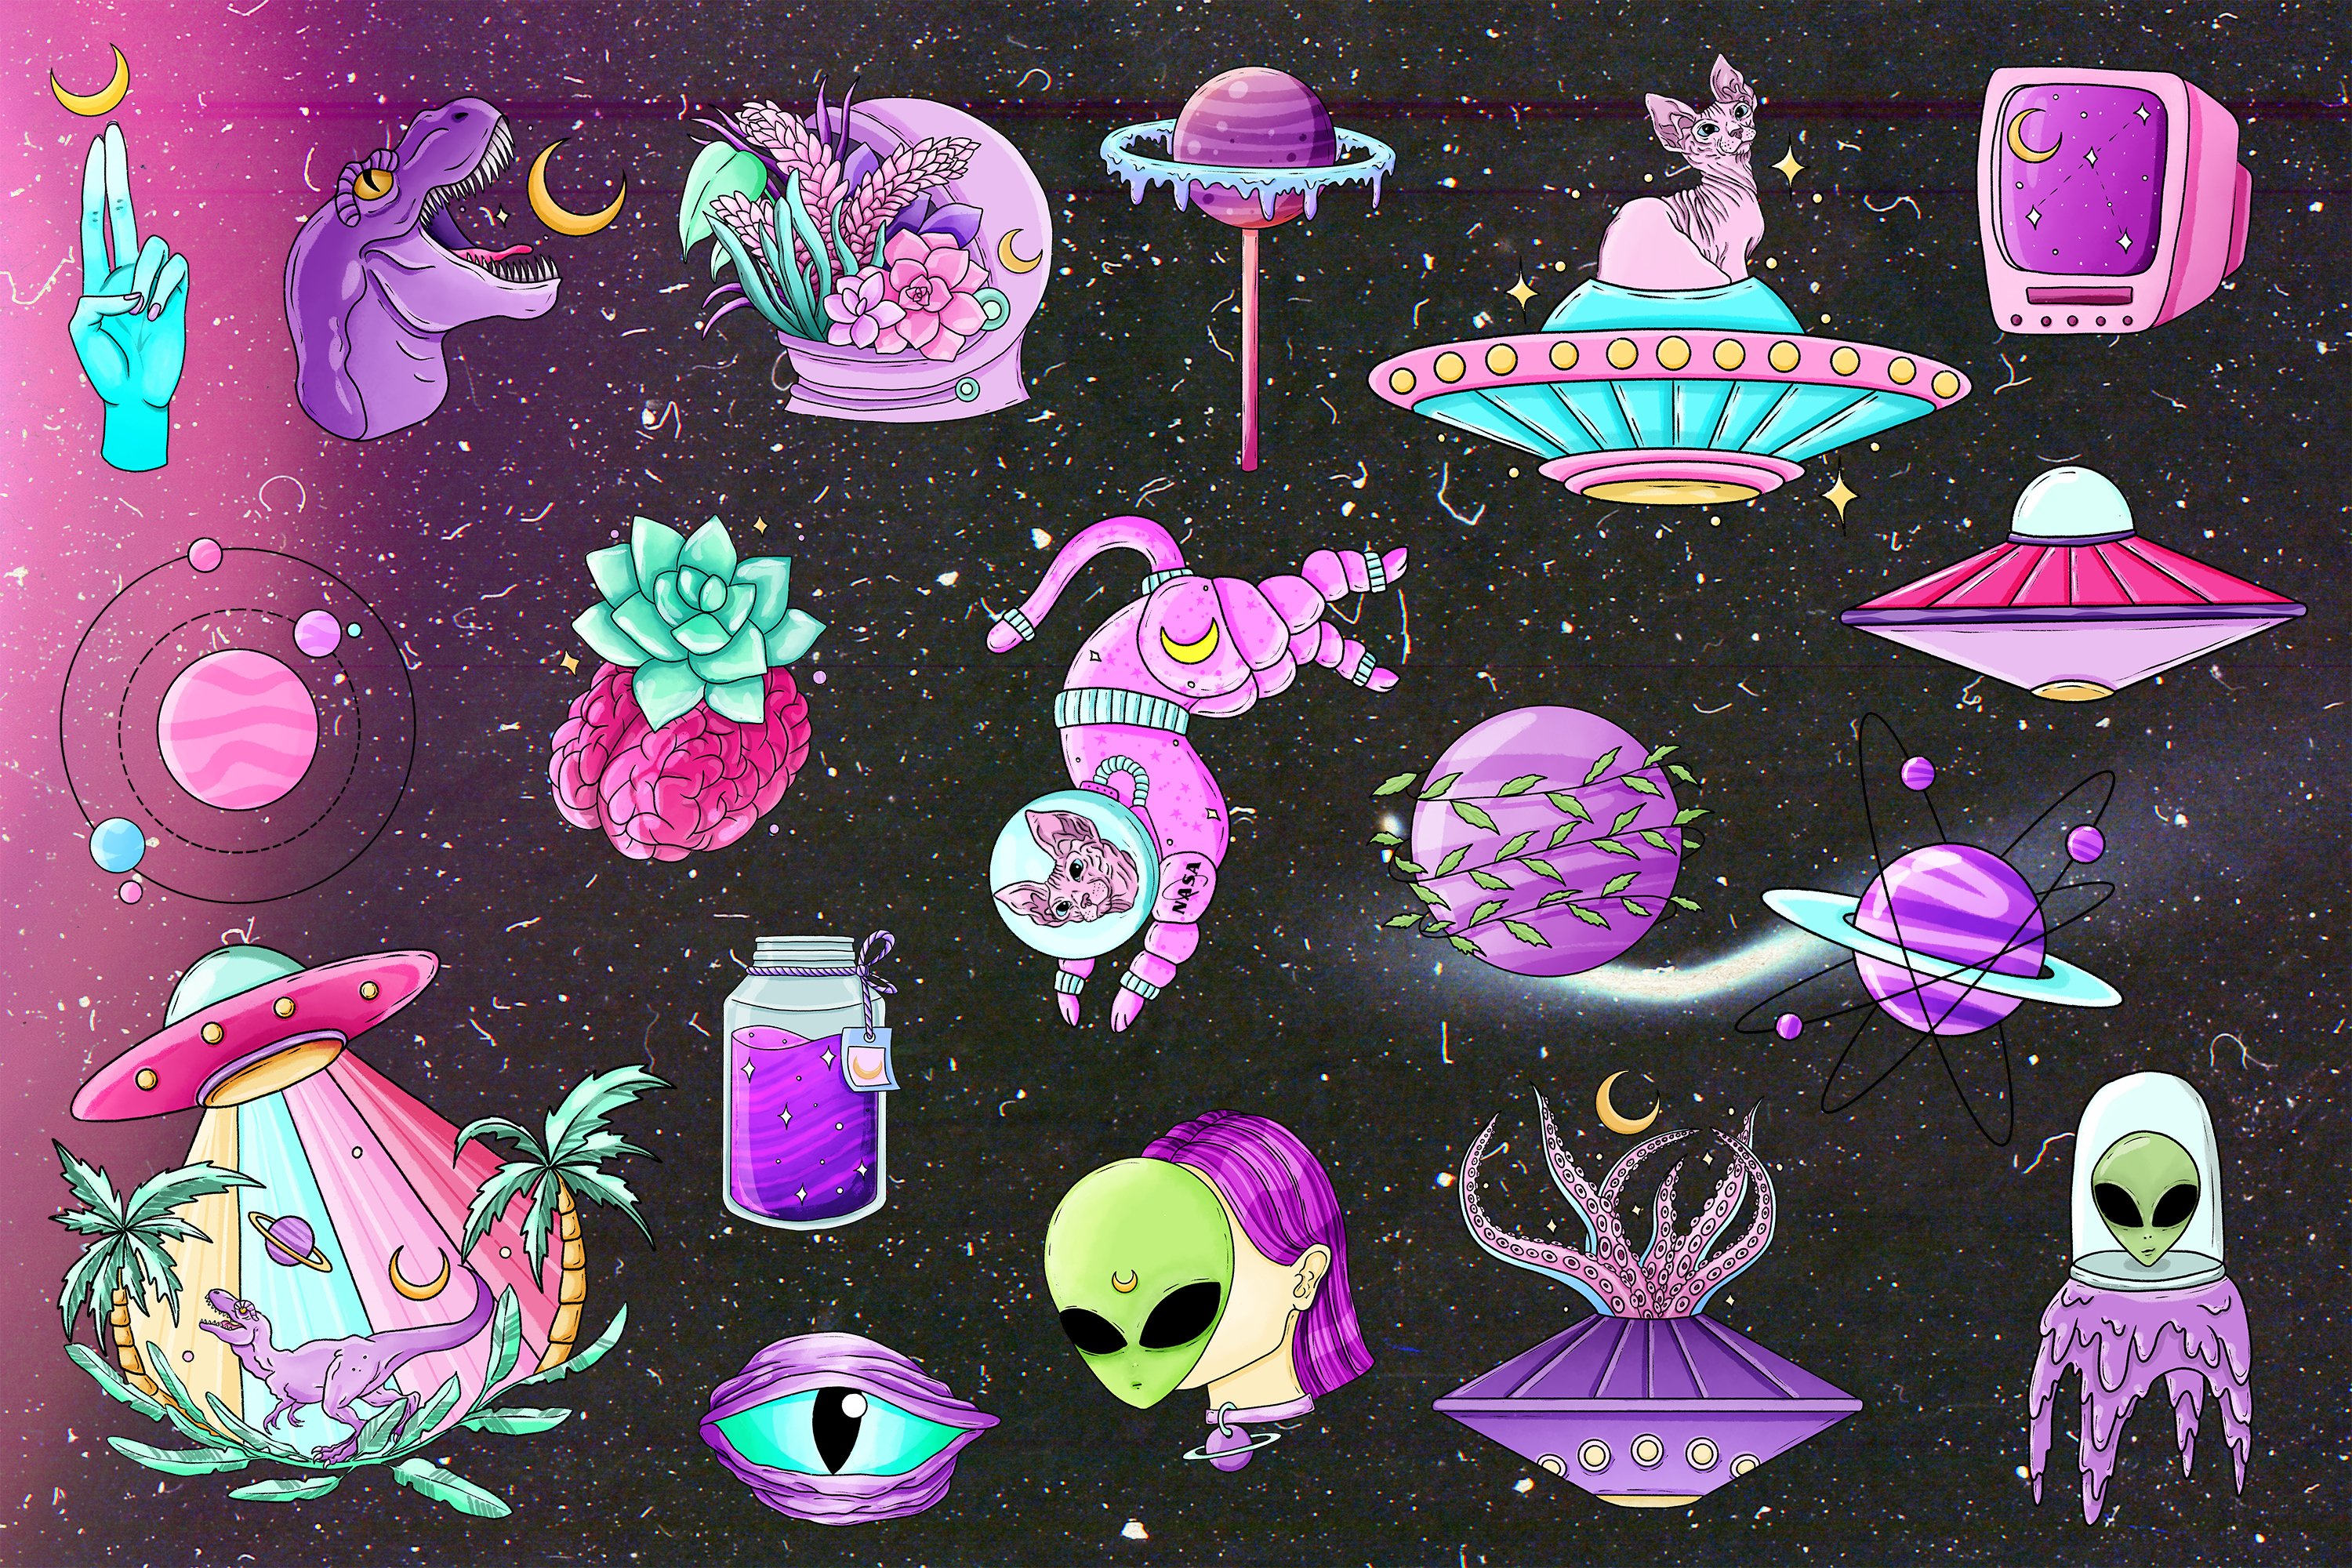 Alien clipart, Space clipart, Pastel goth clipart, UFO png example image 3